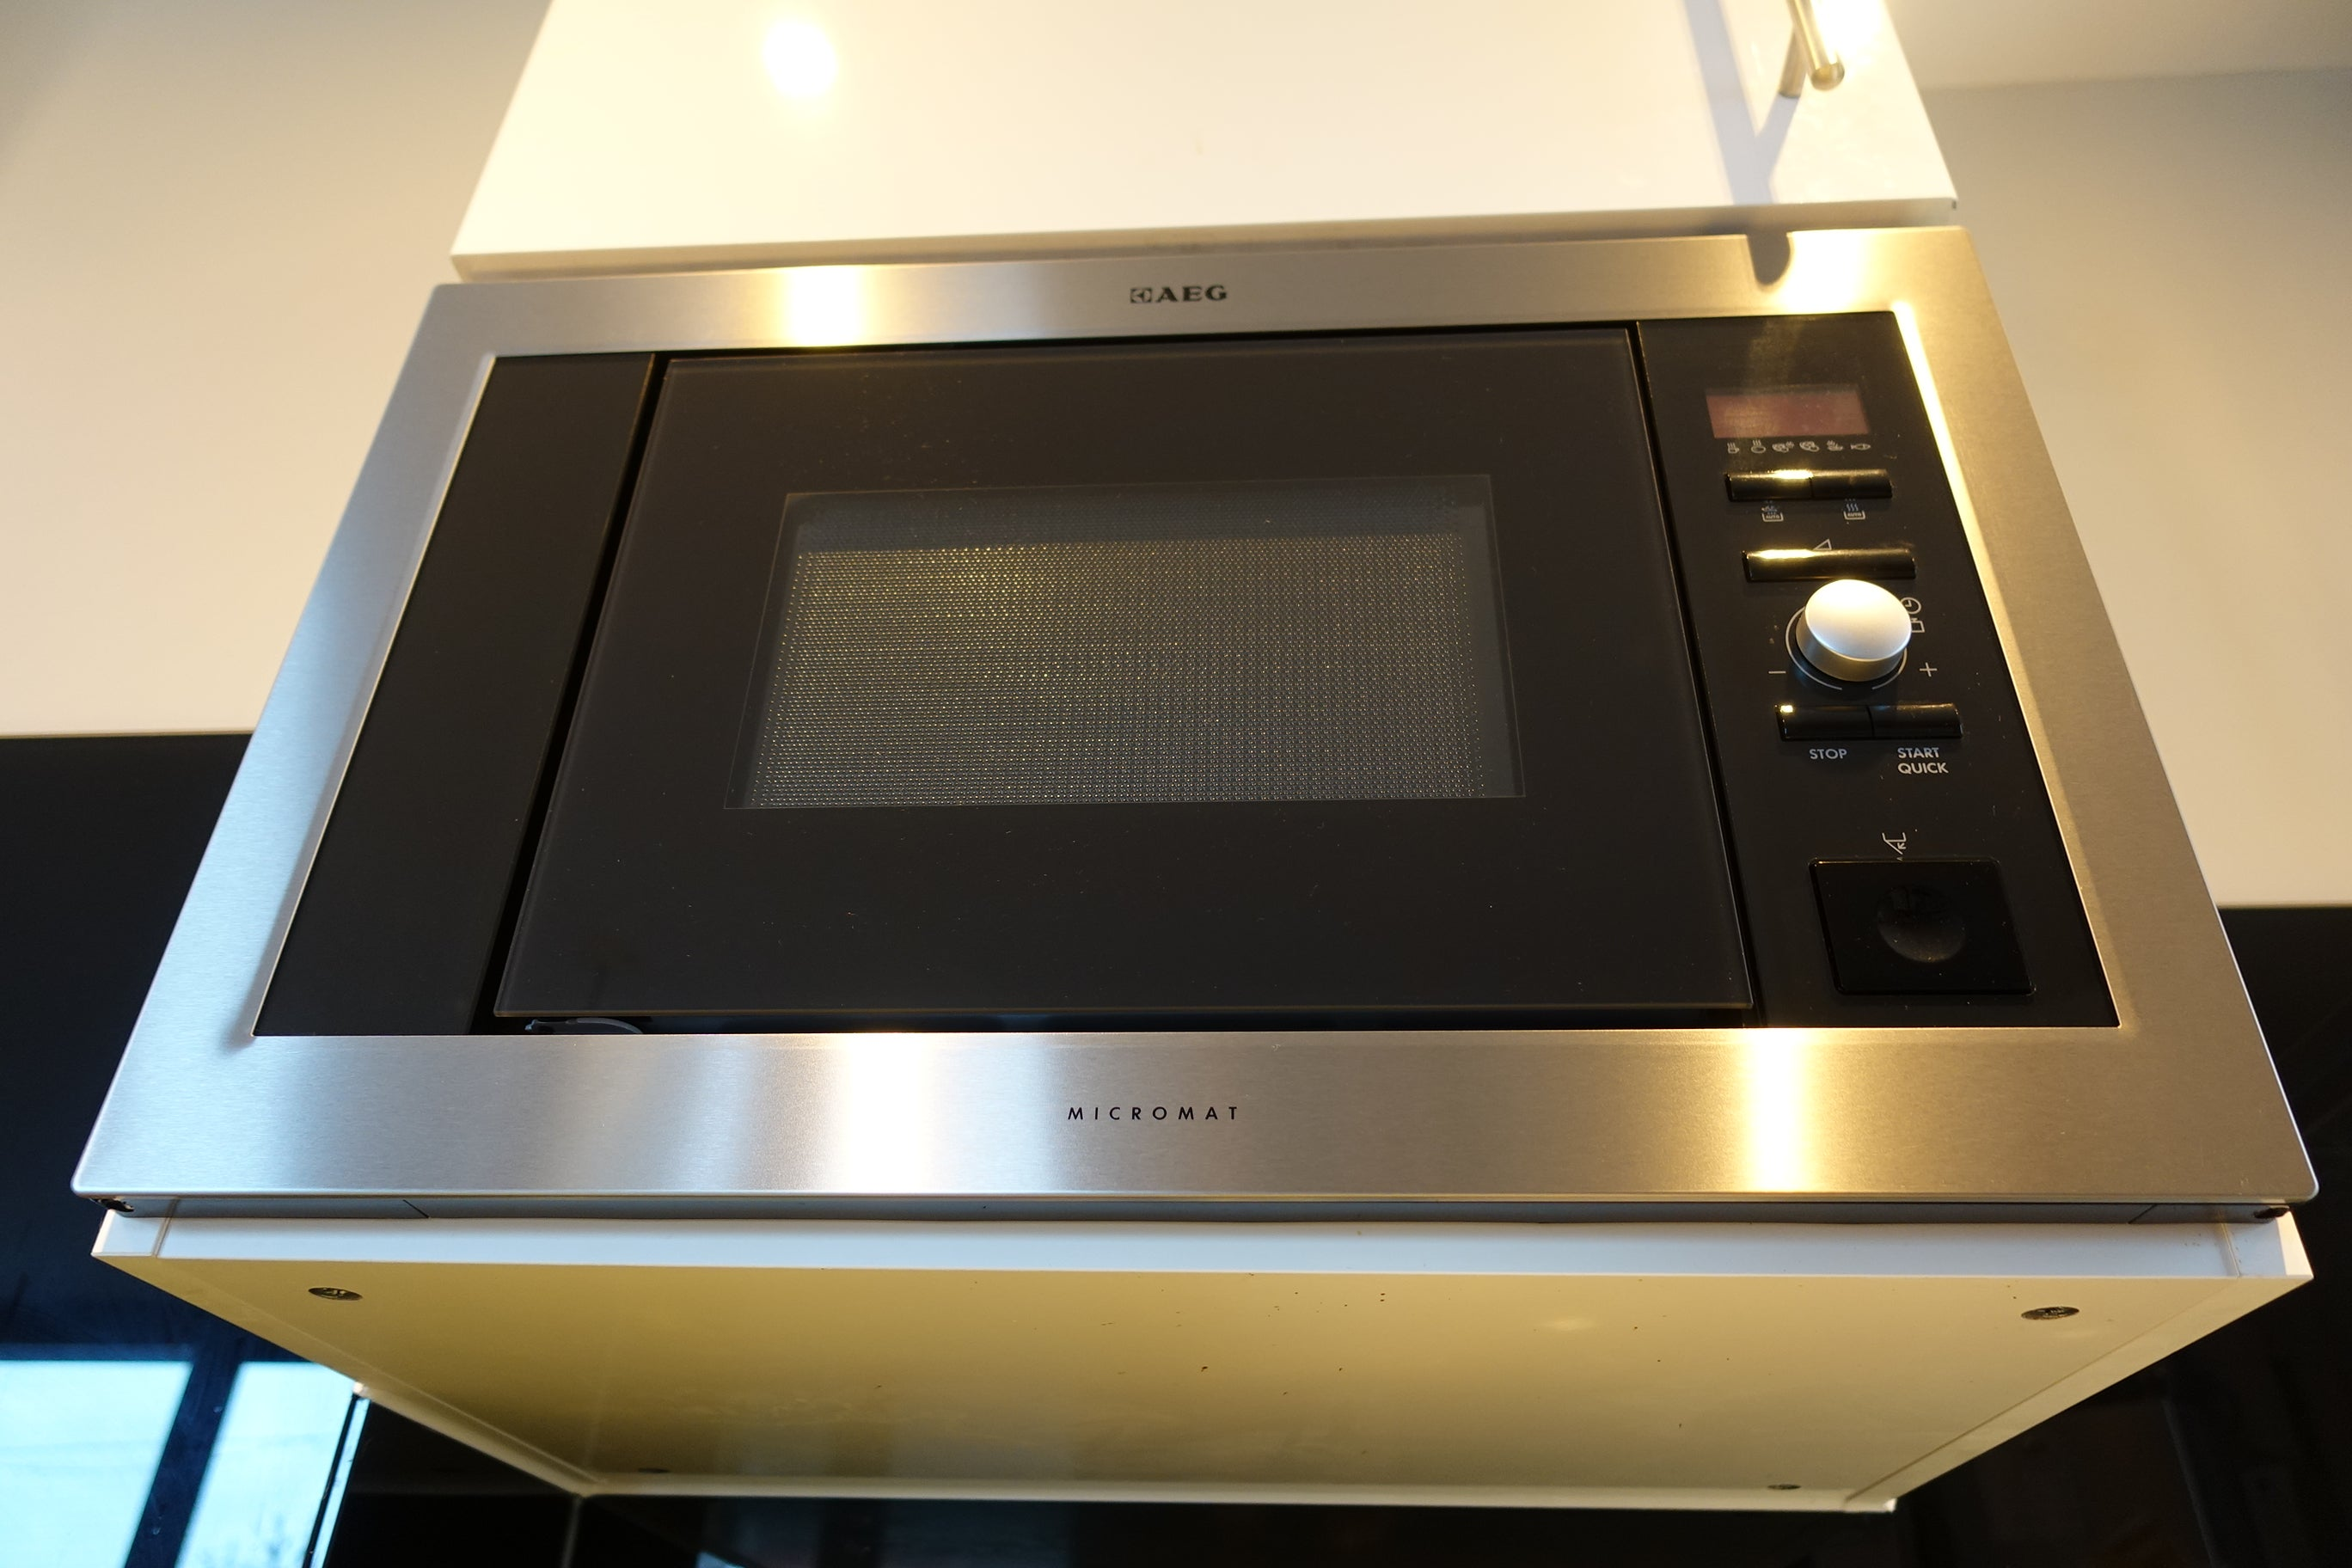 How to clean a microwave | Trusted Reviews